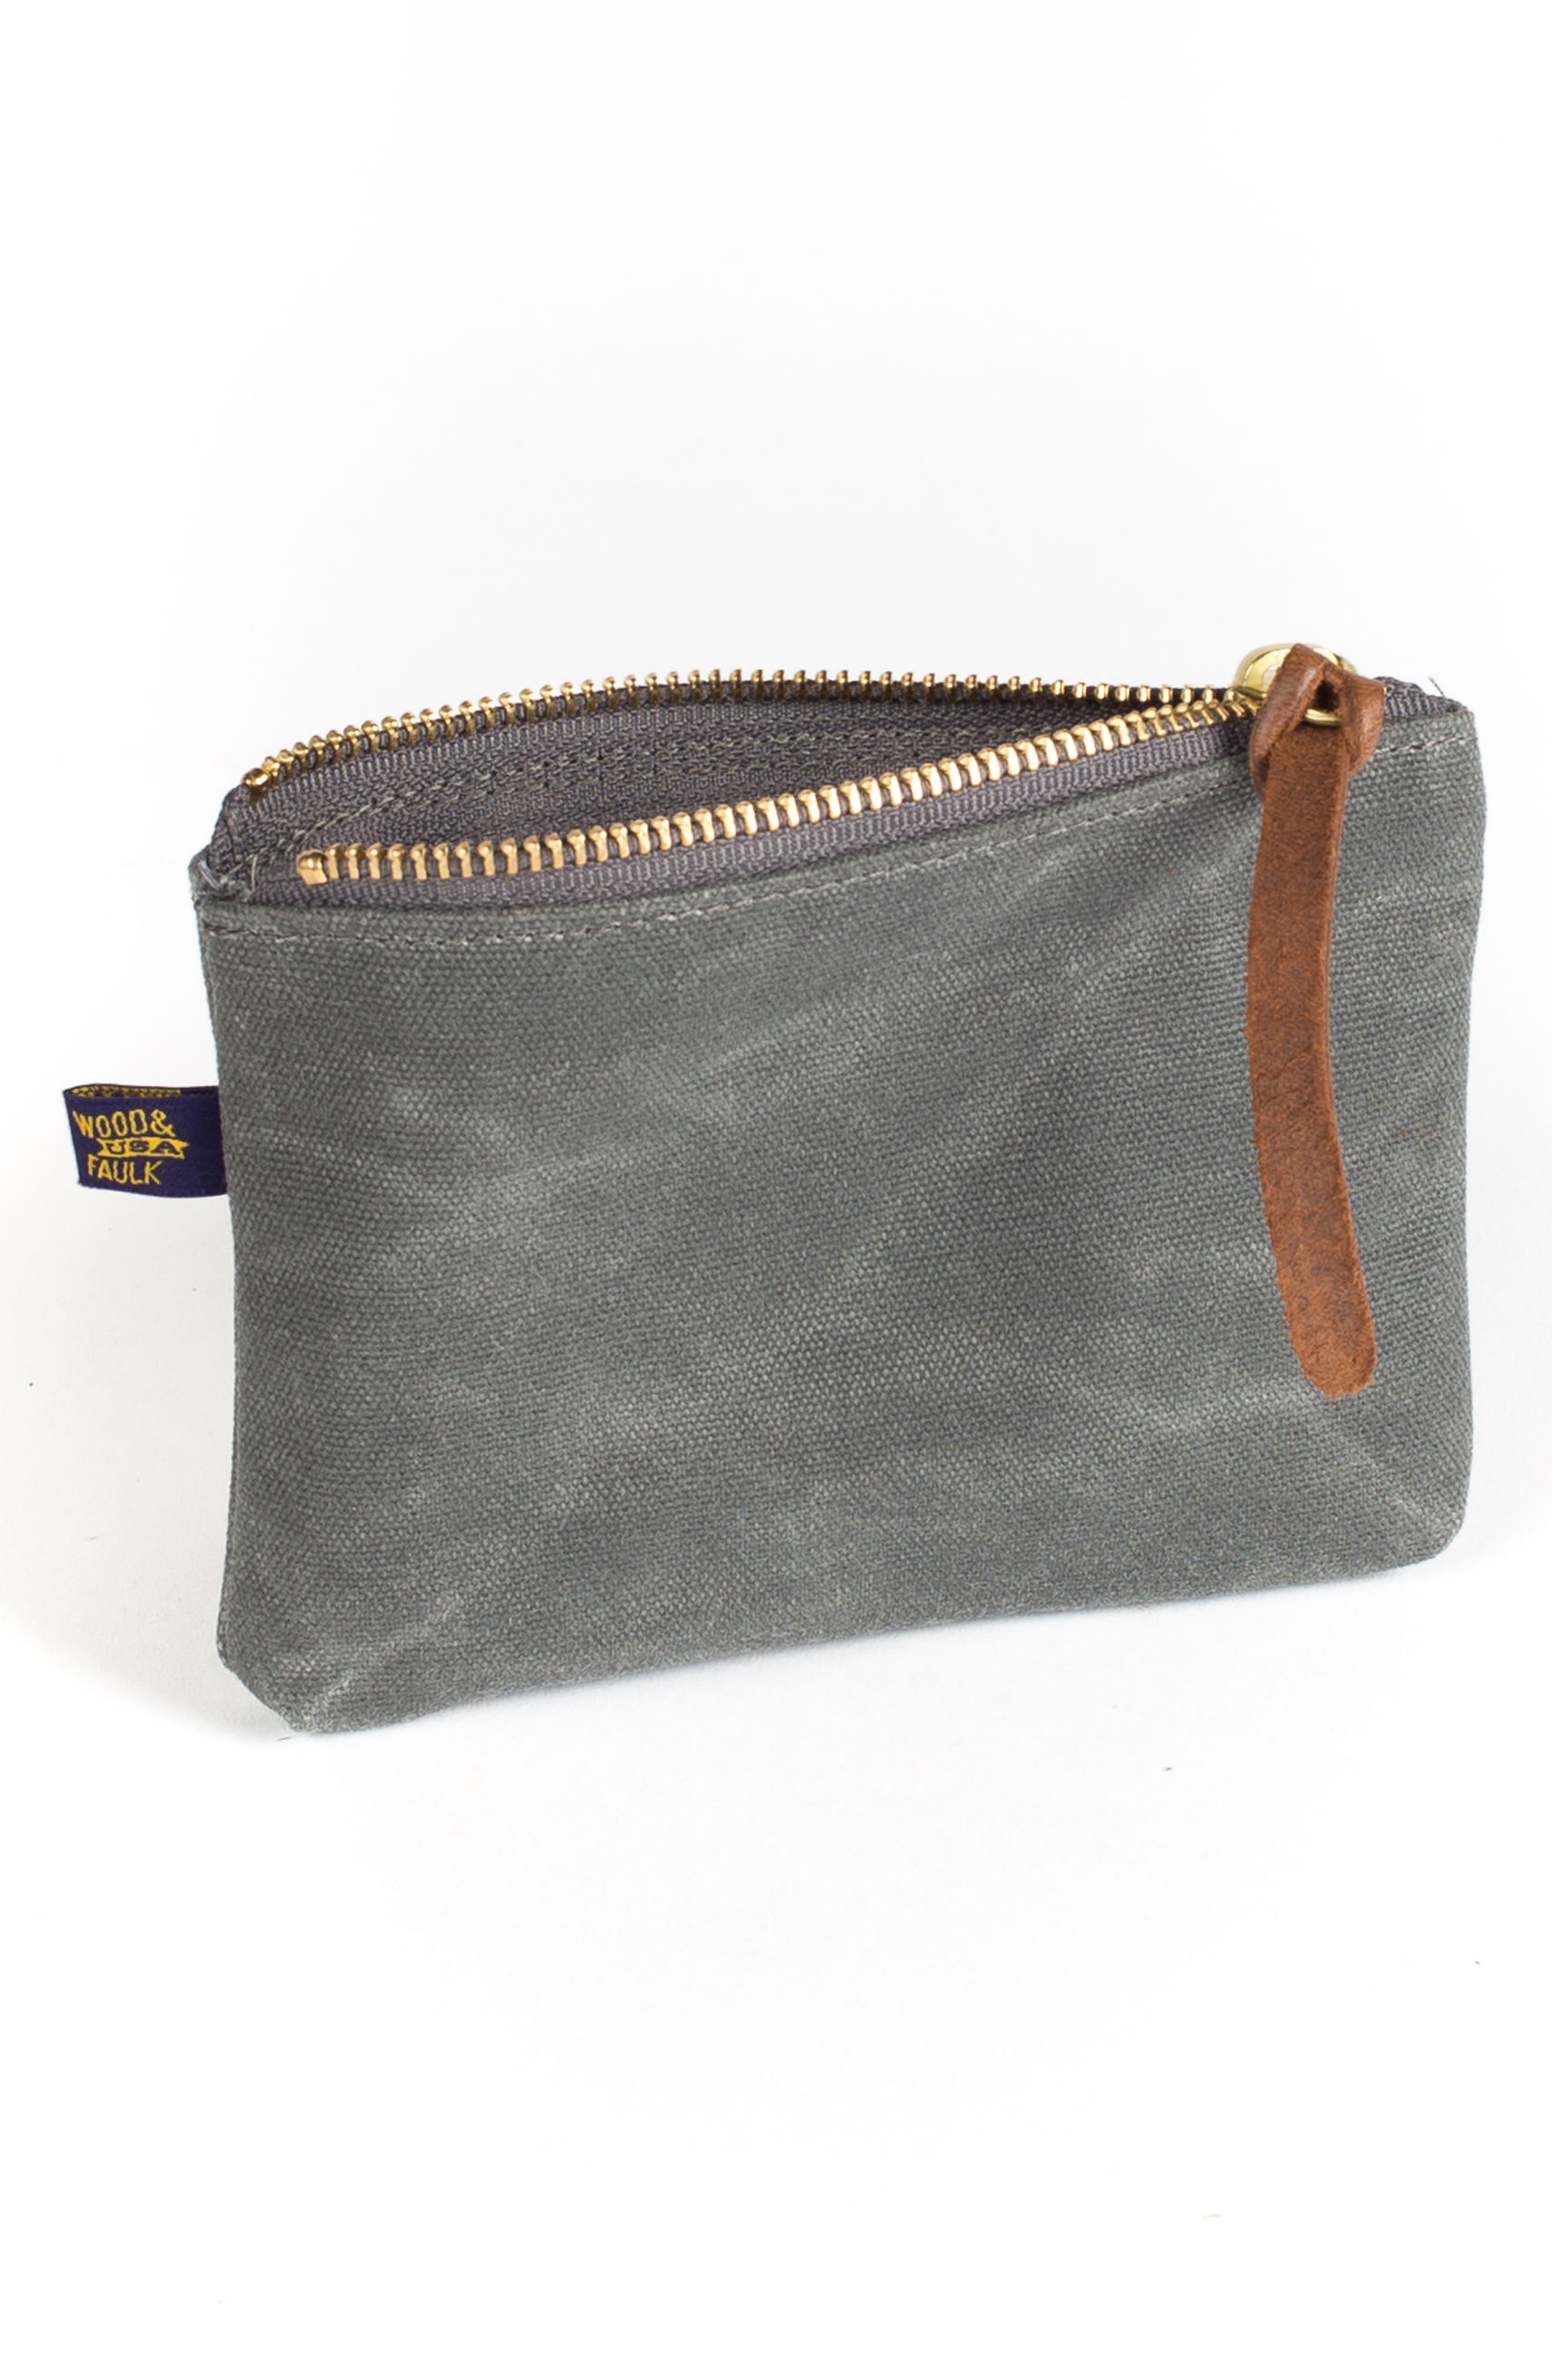 Waxed Canvas Zip Pouch,                             Alternate thumbnail 2, color,                             022